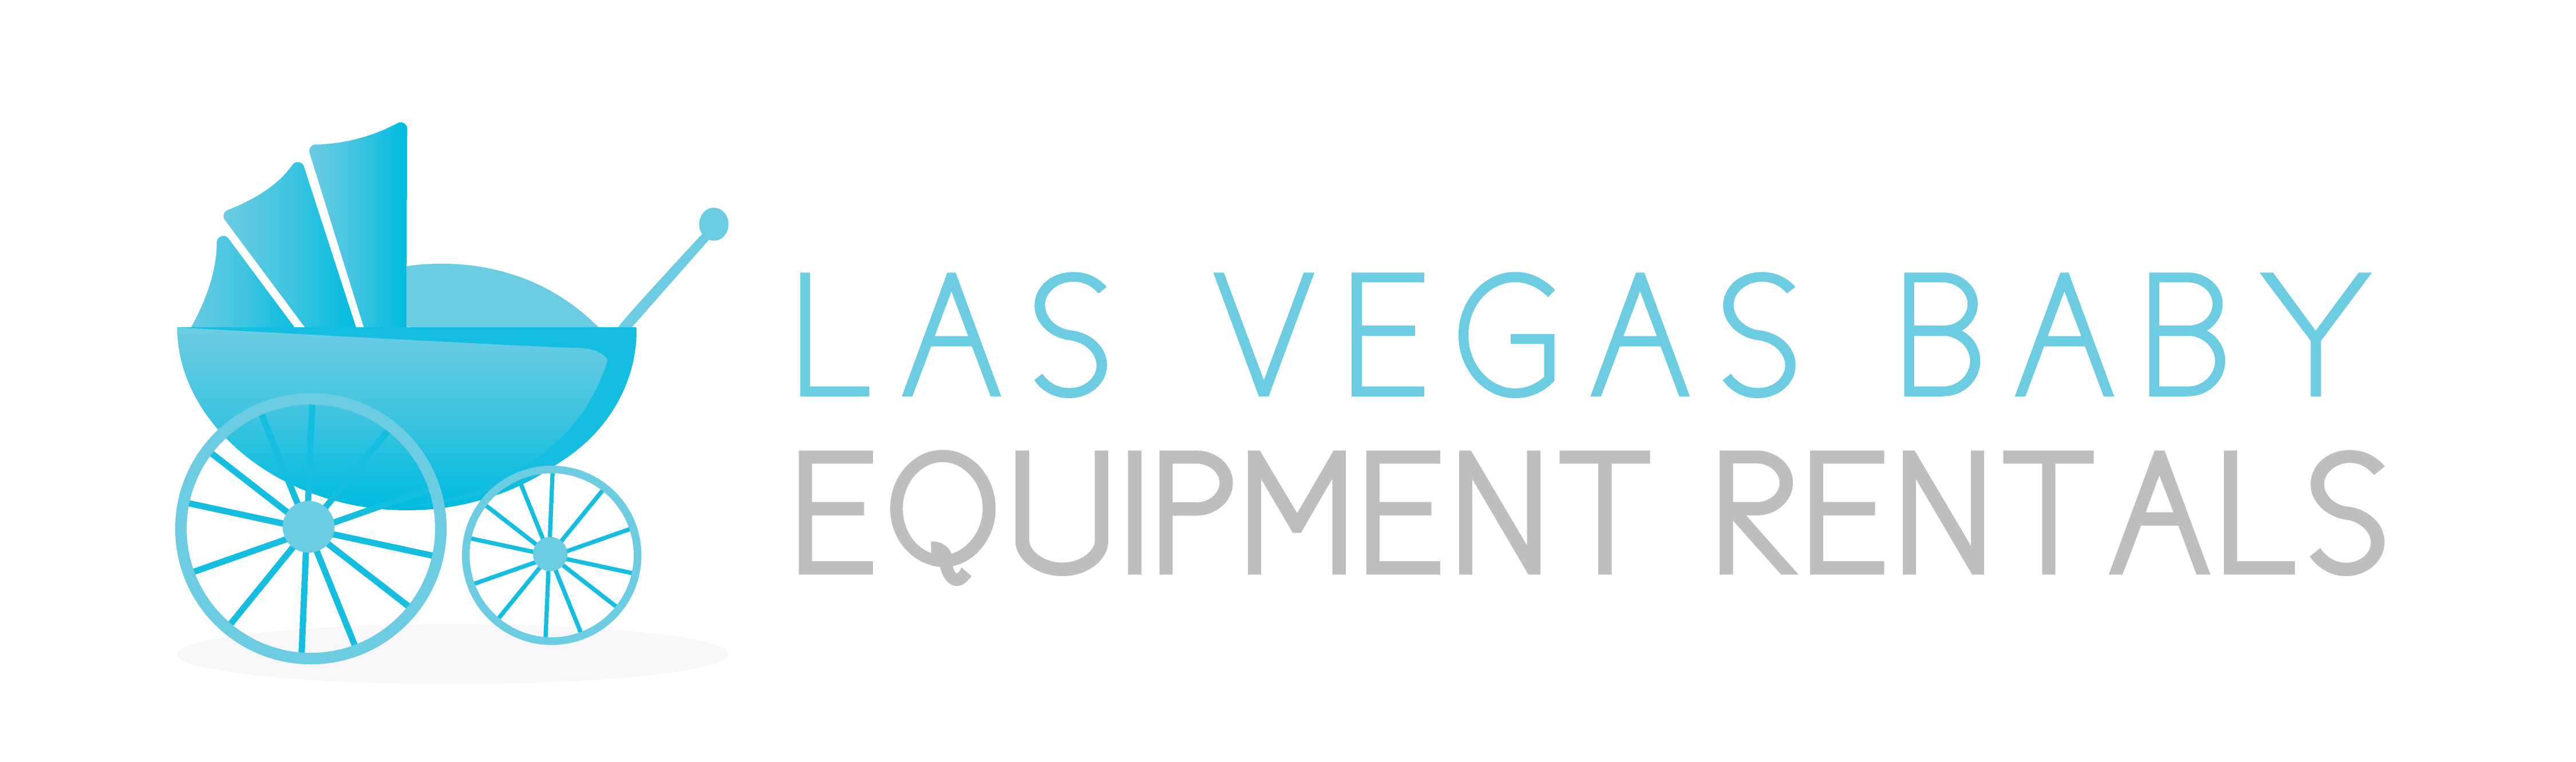 Las Vegas Baby Equipment Rentals